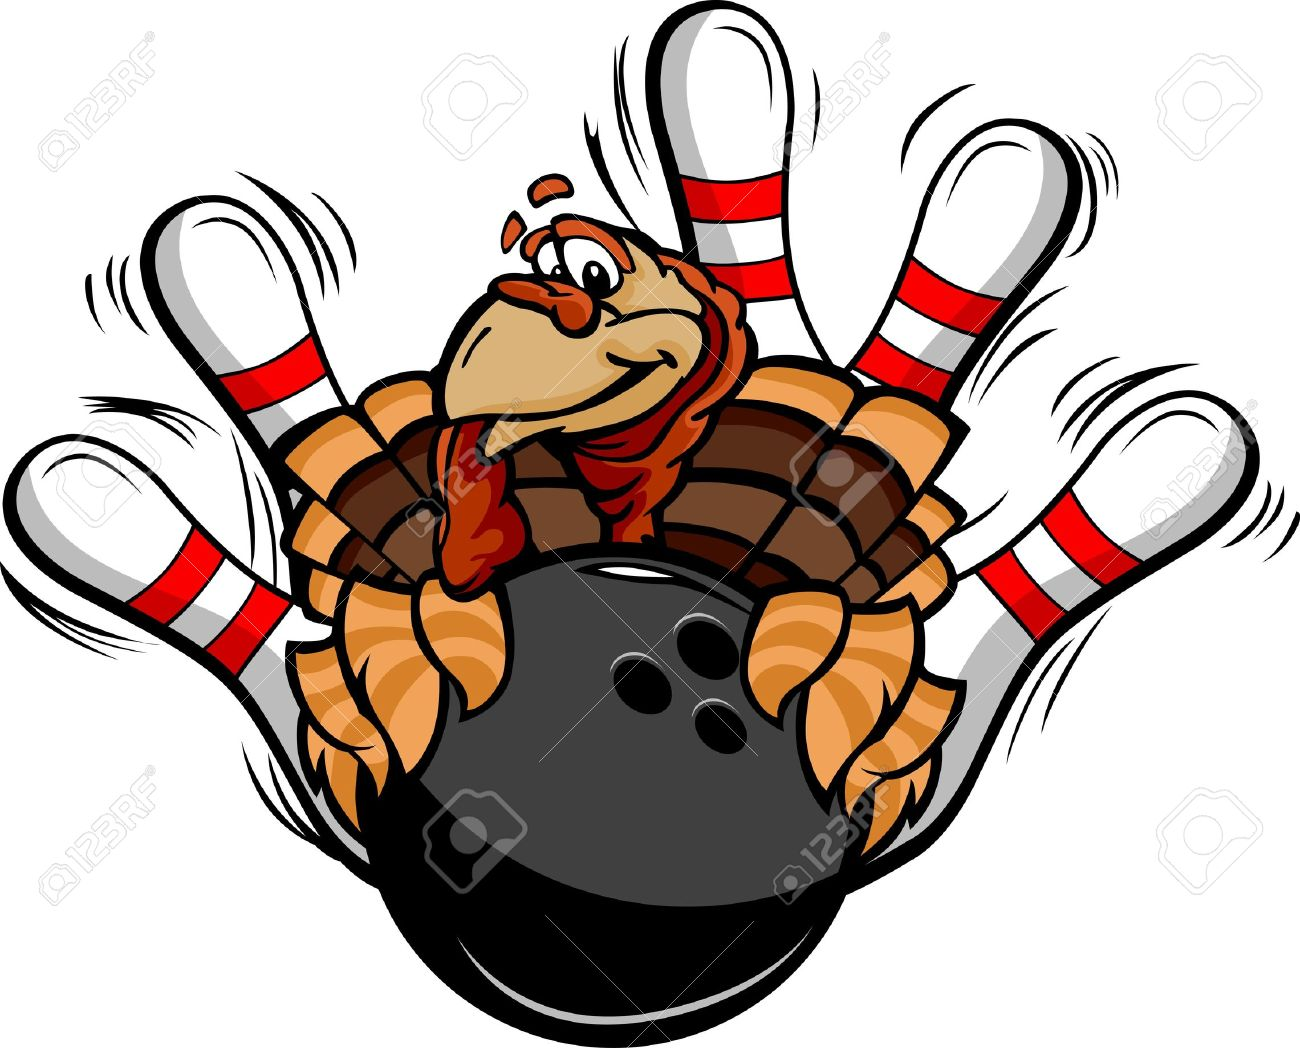 1300x1048 Turkey Holding A Bowling Ball Surrounded By Bowling Pins Royalty